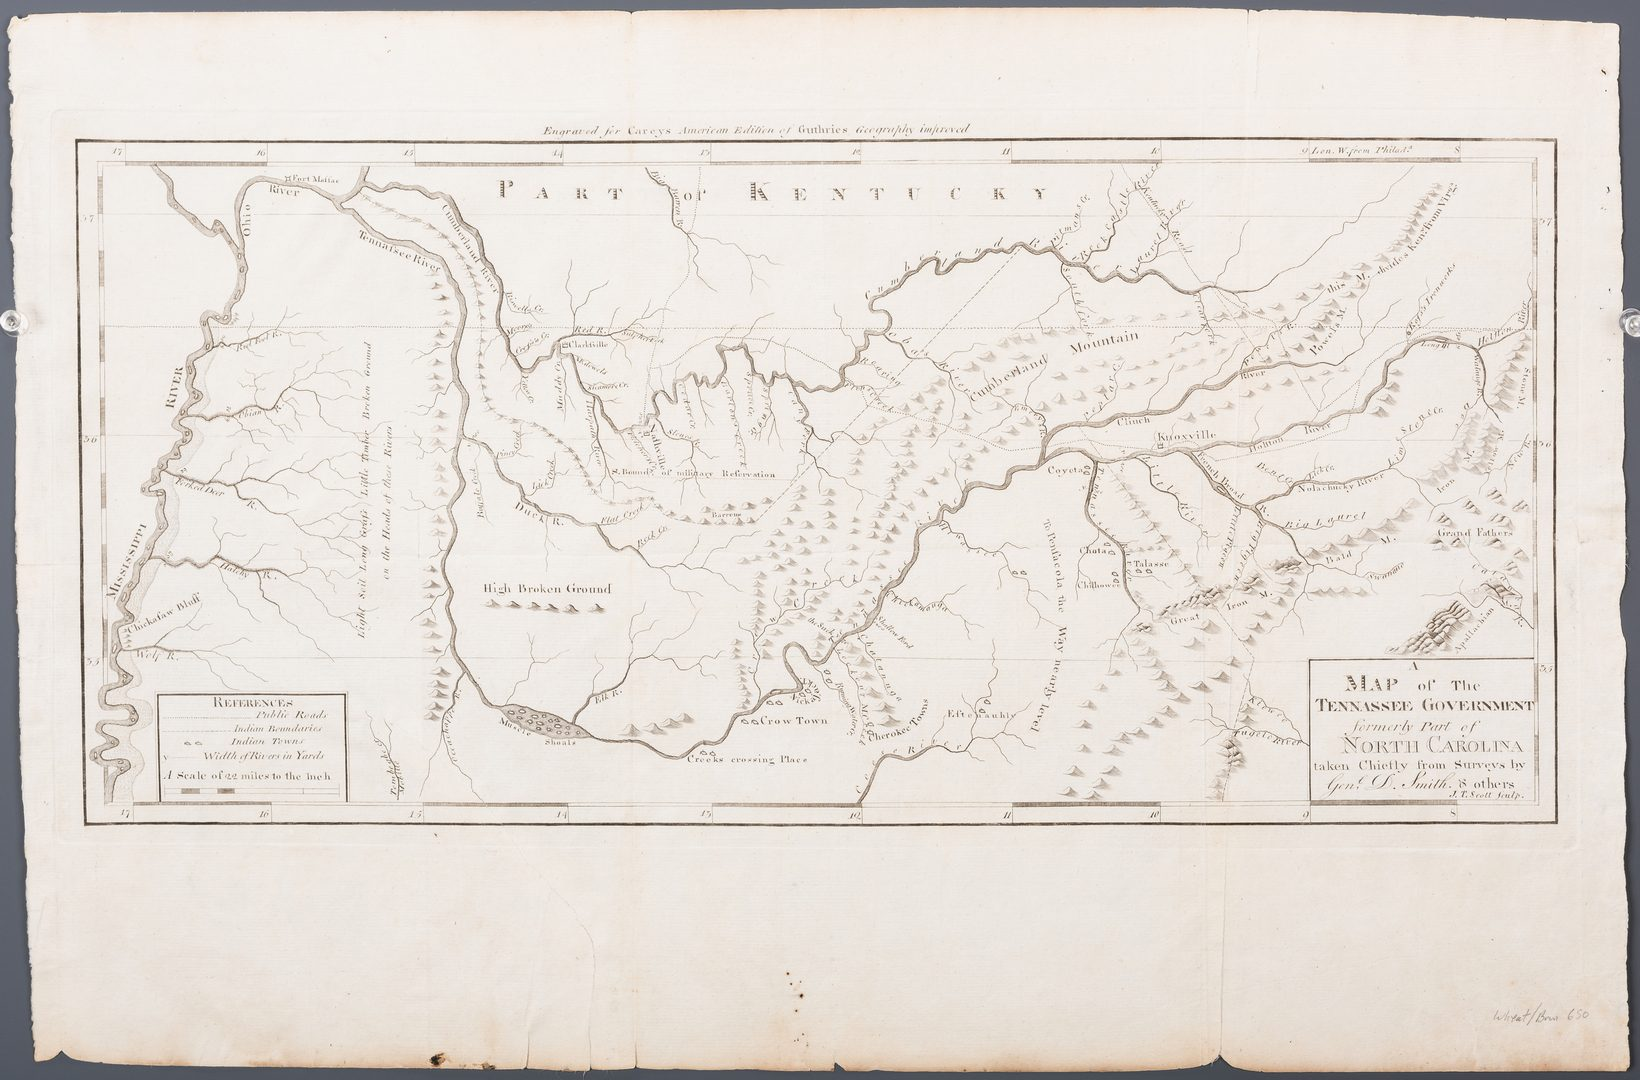 Lot 289: Map of the Tennessee Government, 1795 Smith